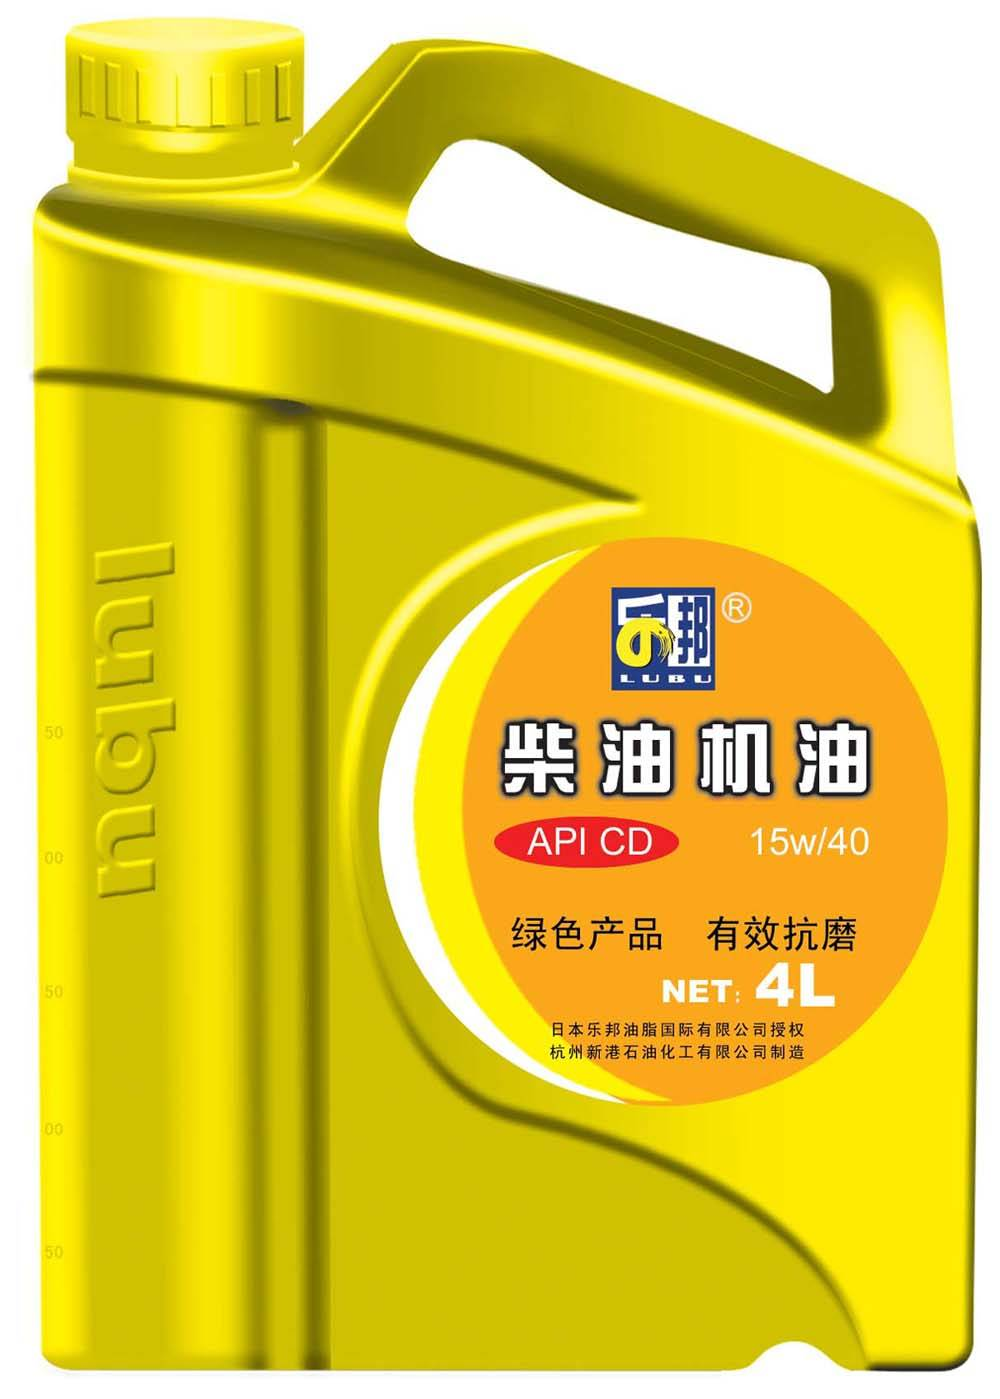 API CD 15W/40 Diesel Engine Oil